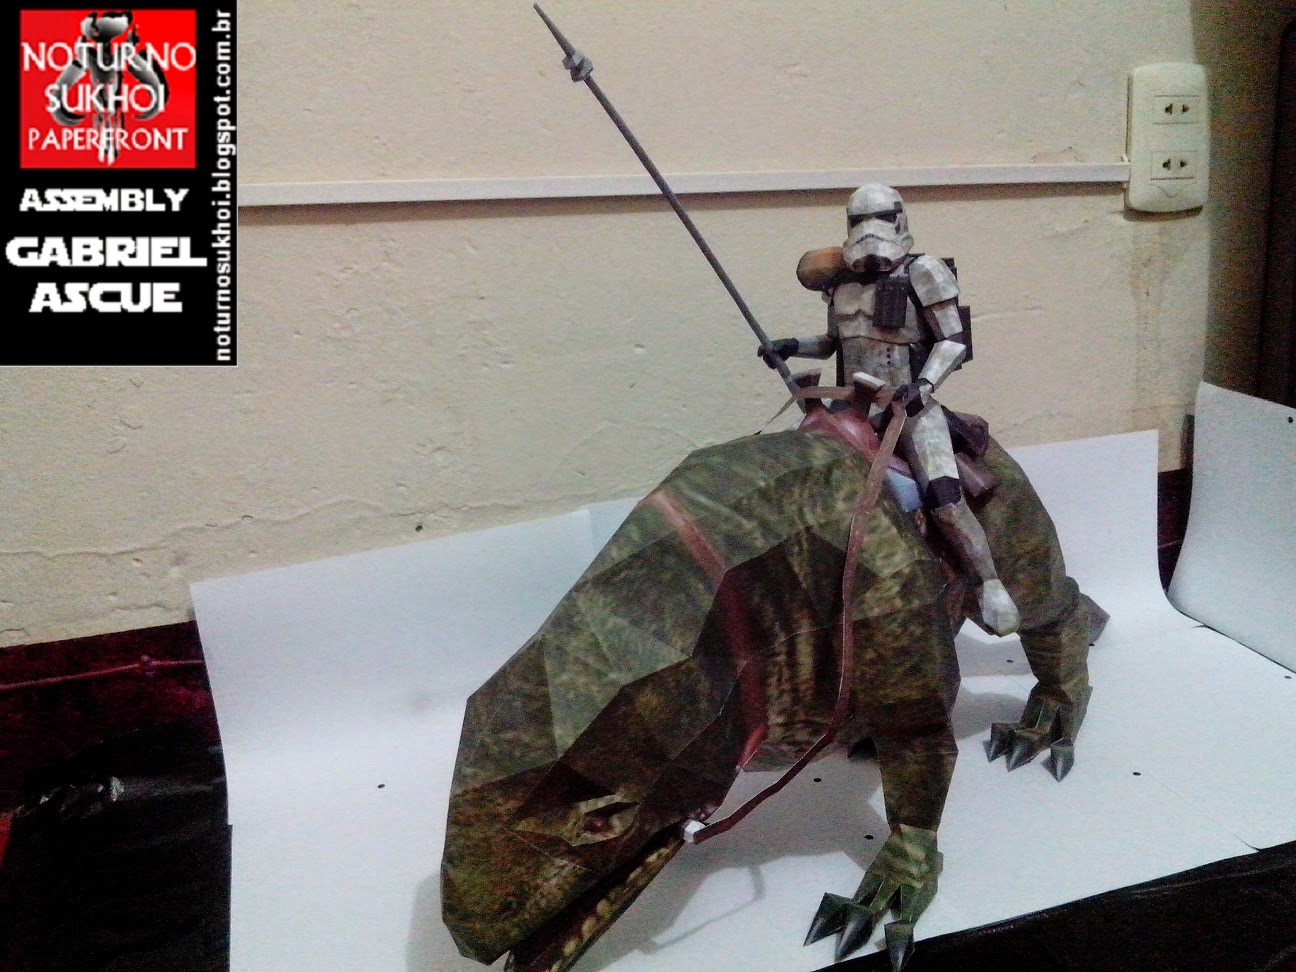 Star Wars Dewback Trooper Papercraft